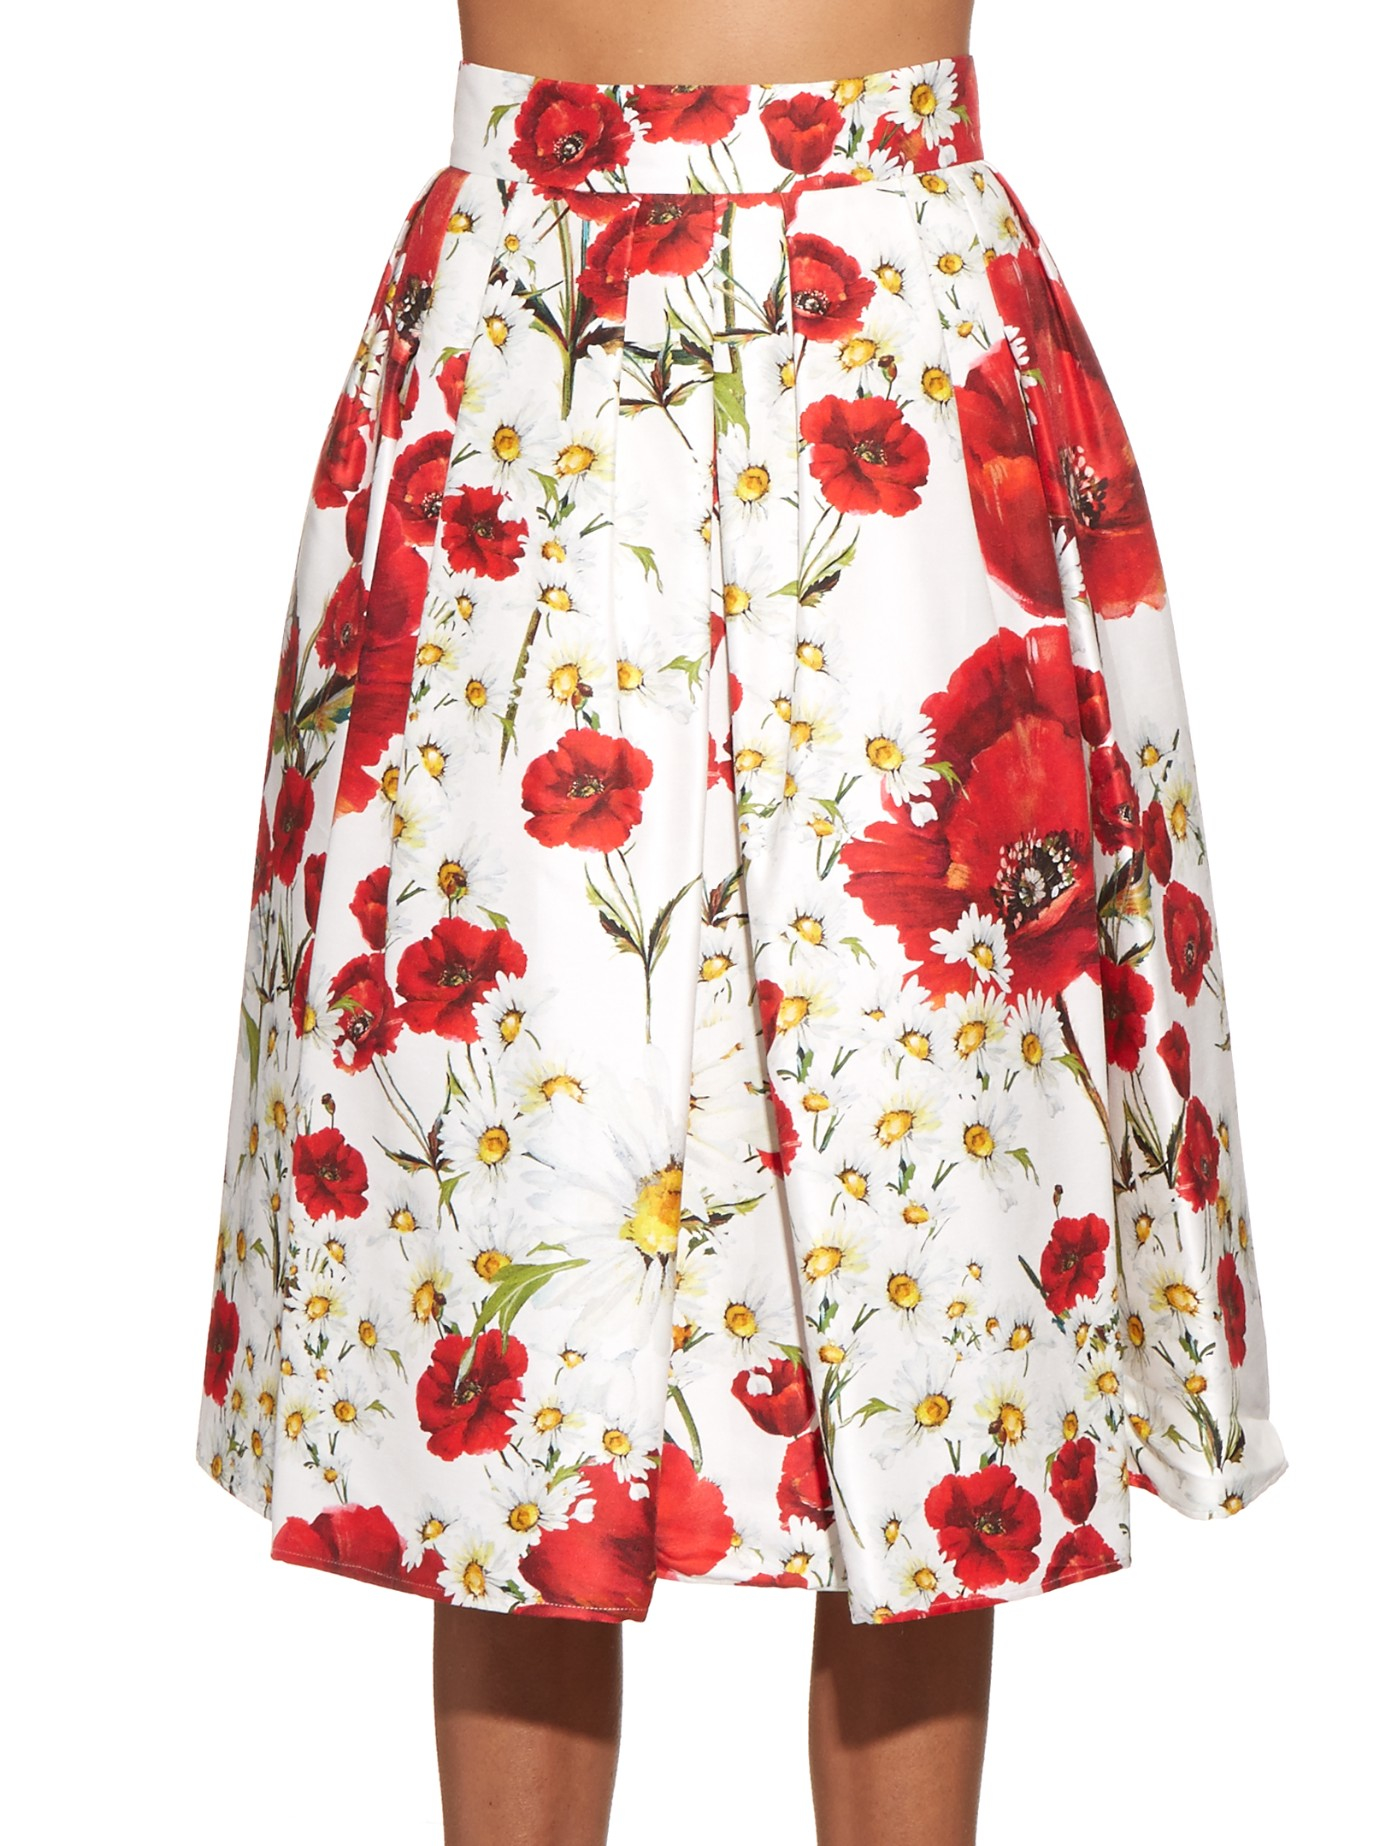 111e7ad1 Dolce & Gabbana Daisy And Poppy-print Pleated Skirt in Red - Lyst